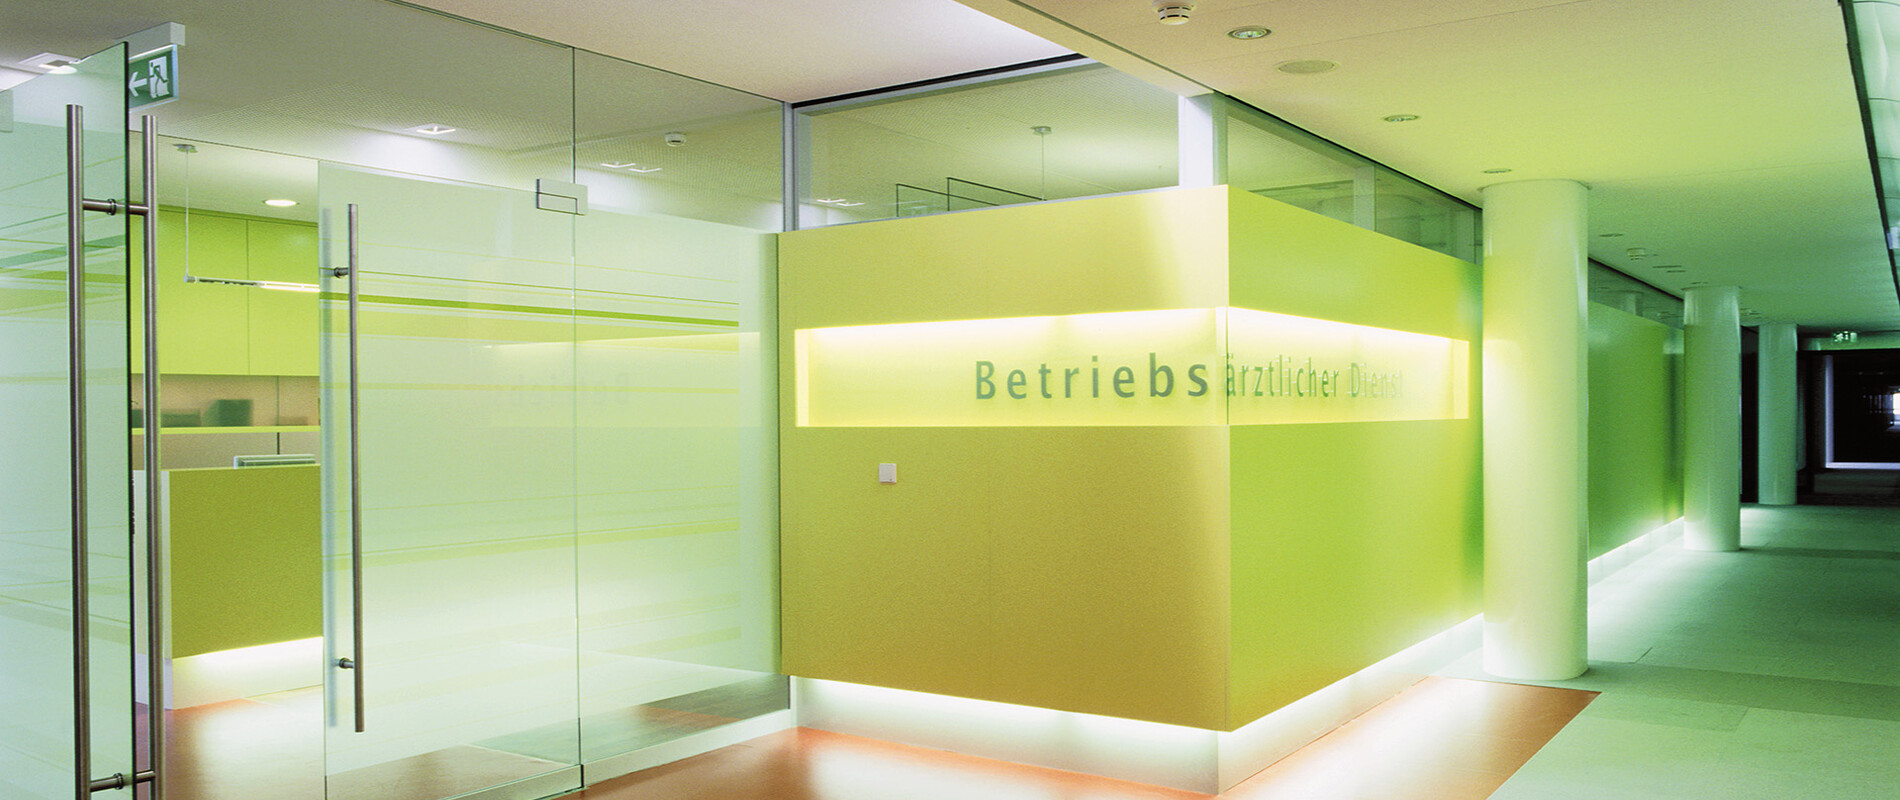 Design and implementation of the occupational healthcare centre Medical Service Centre - BW-Bank Stuttgart entry